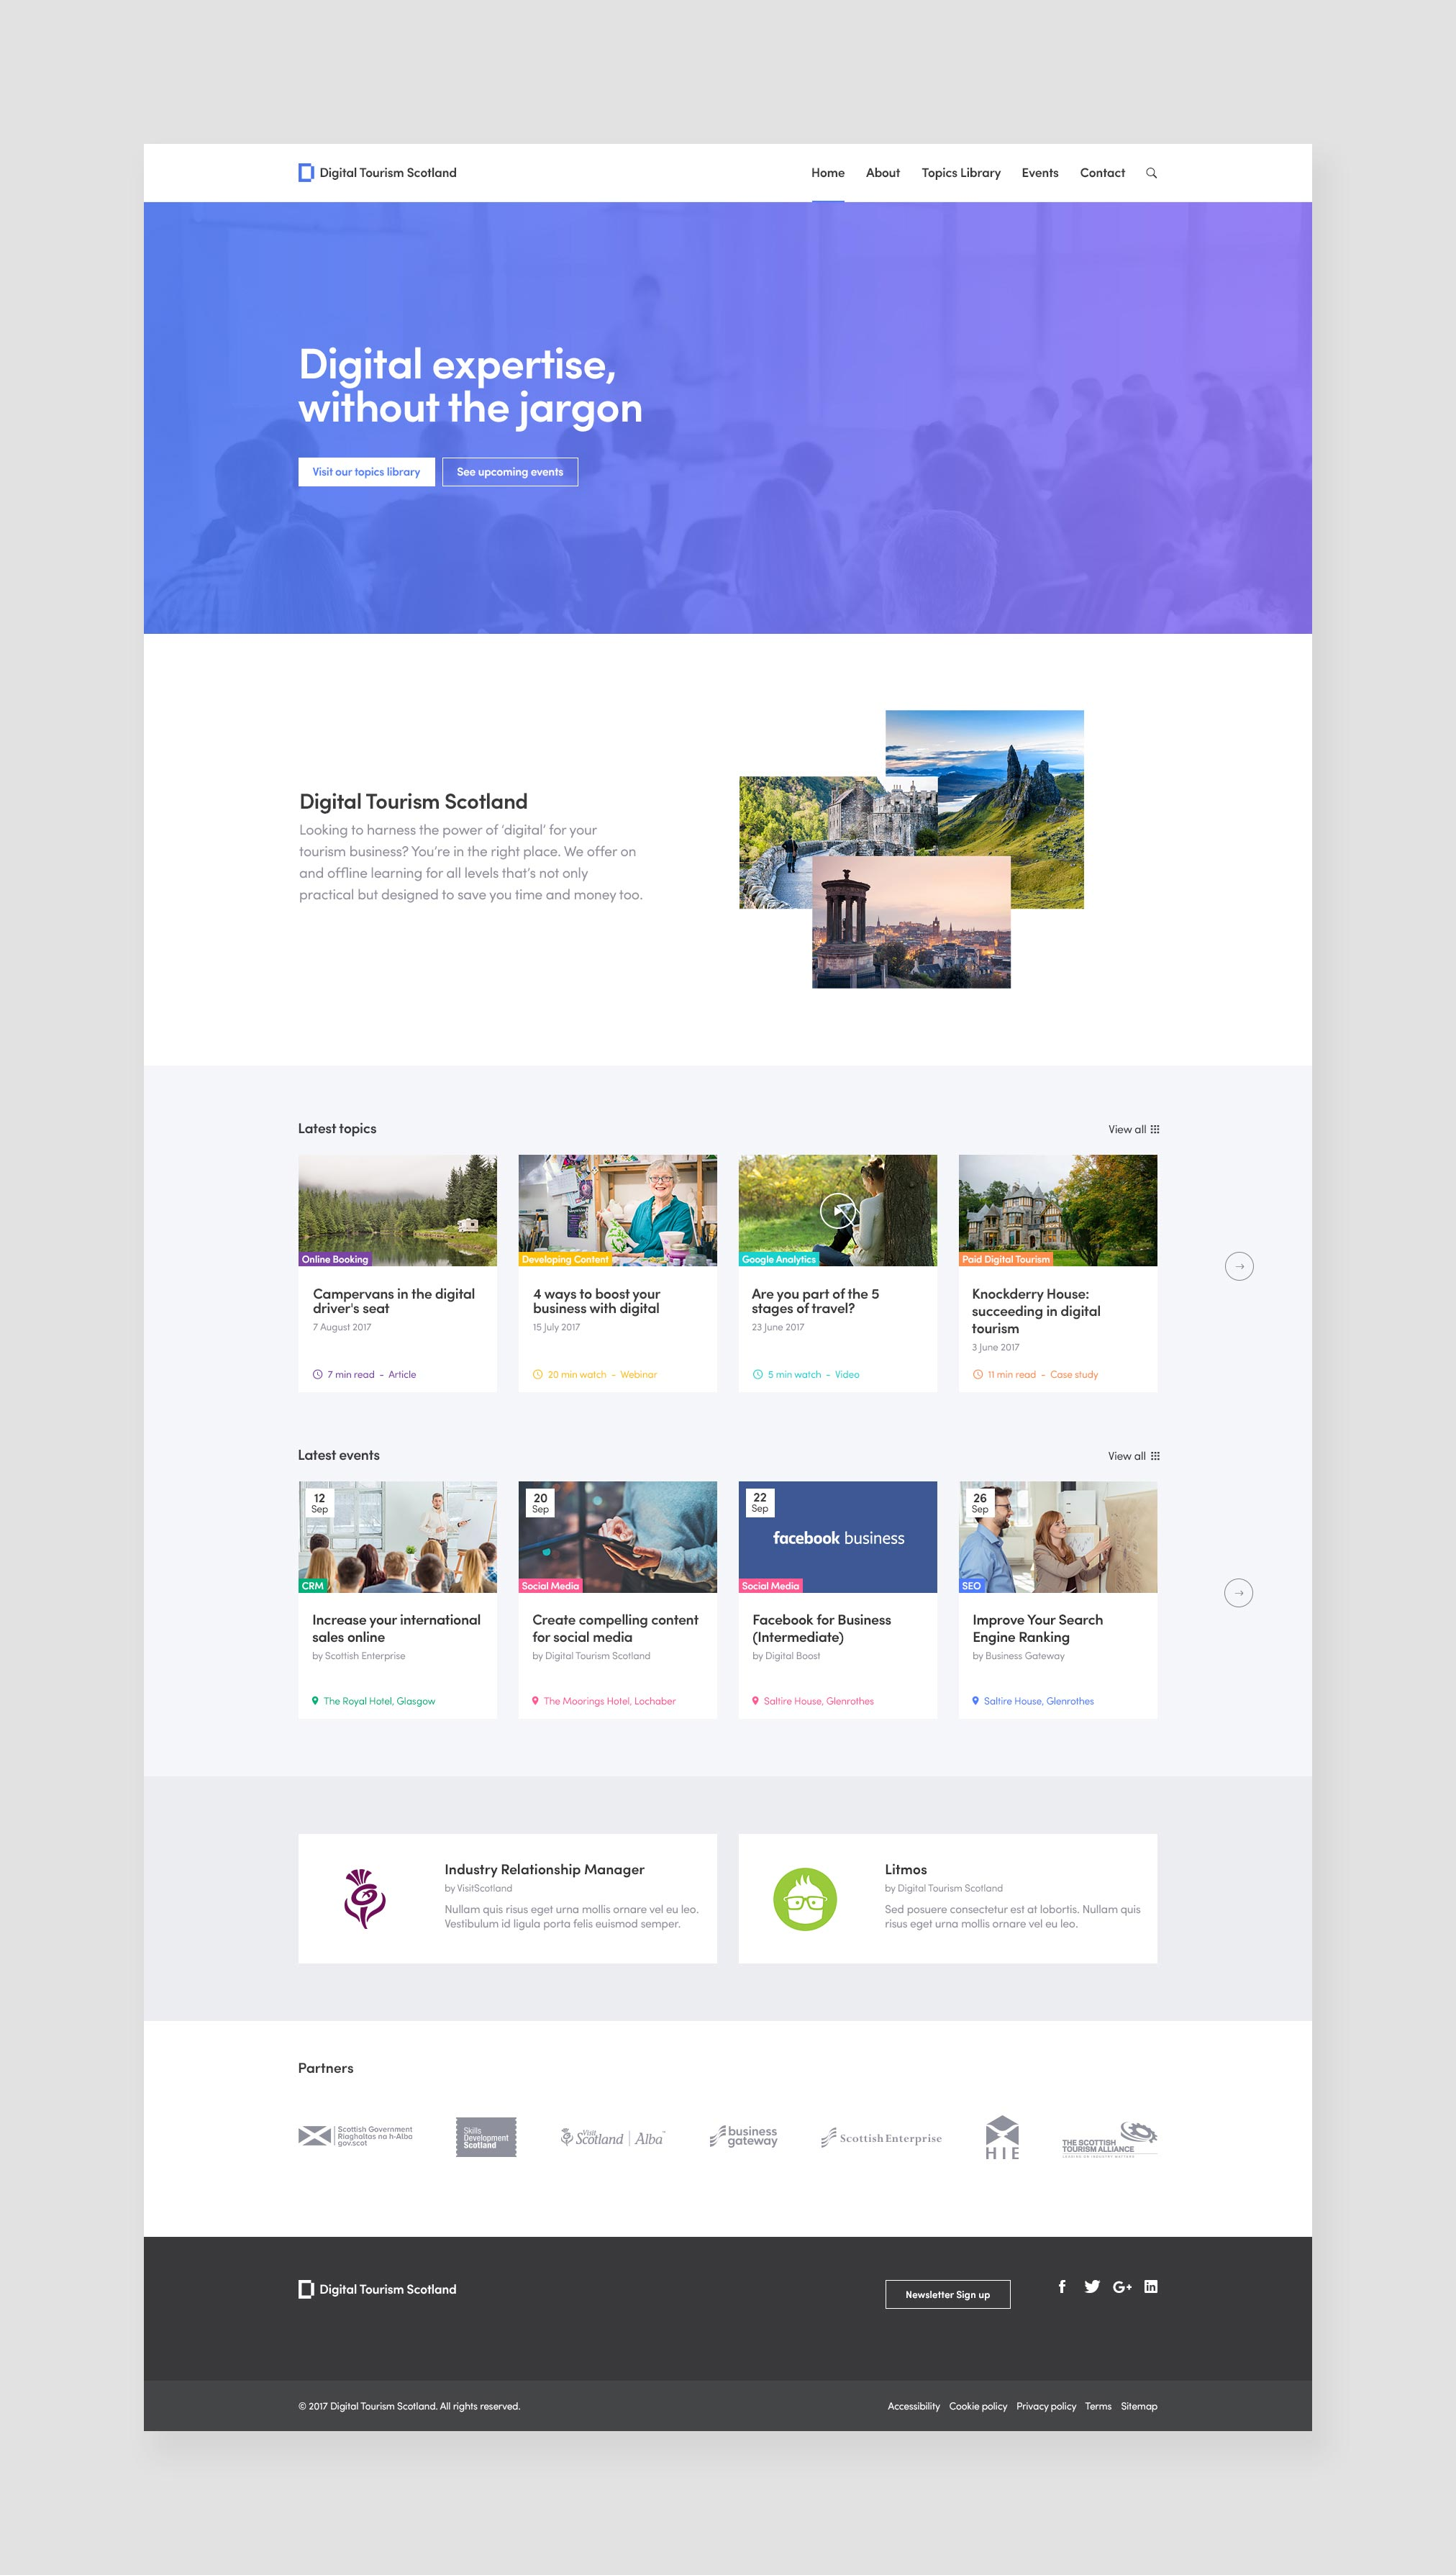 dts-mockup-website-home